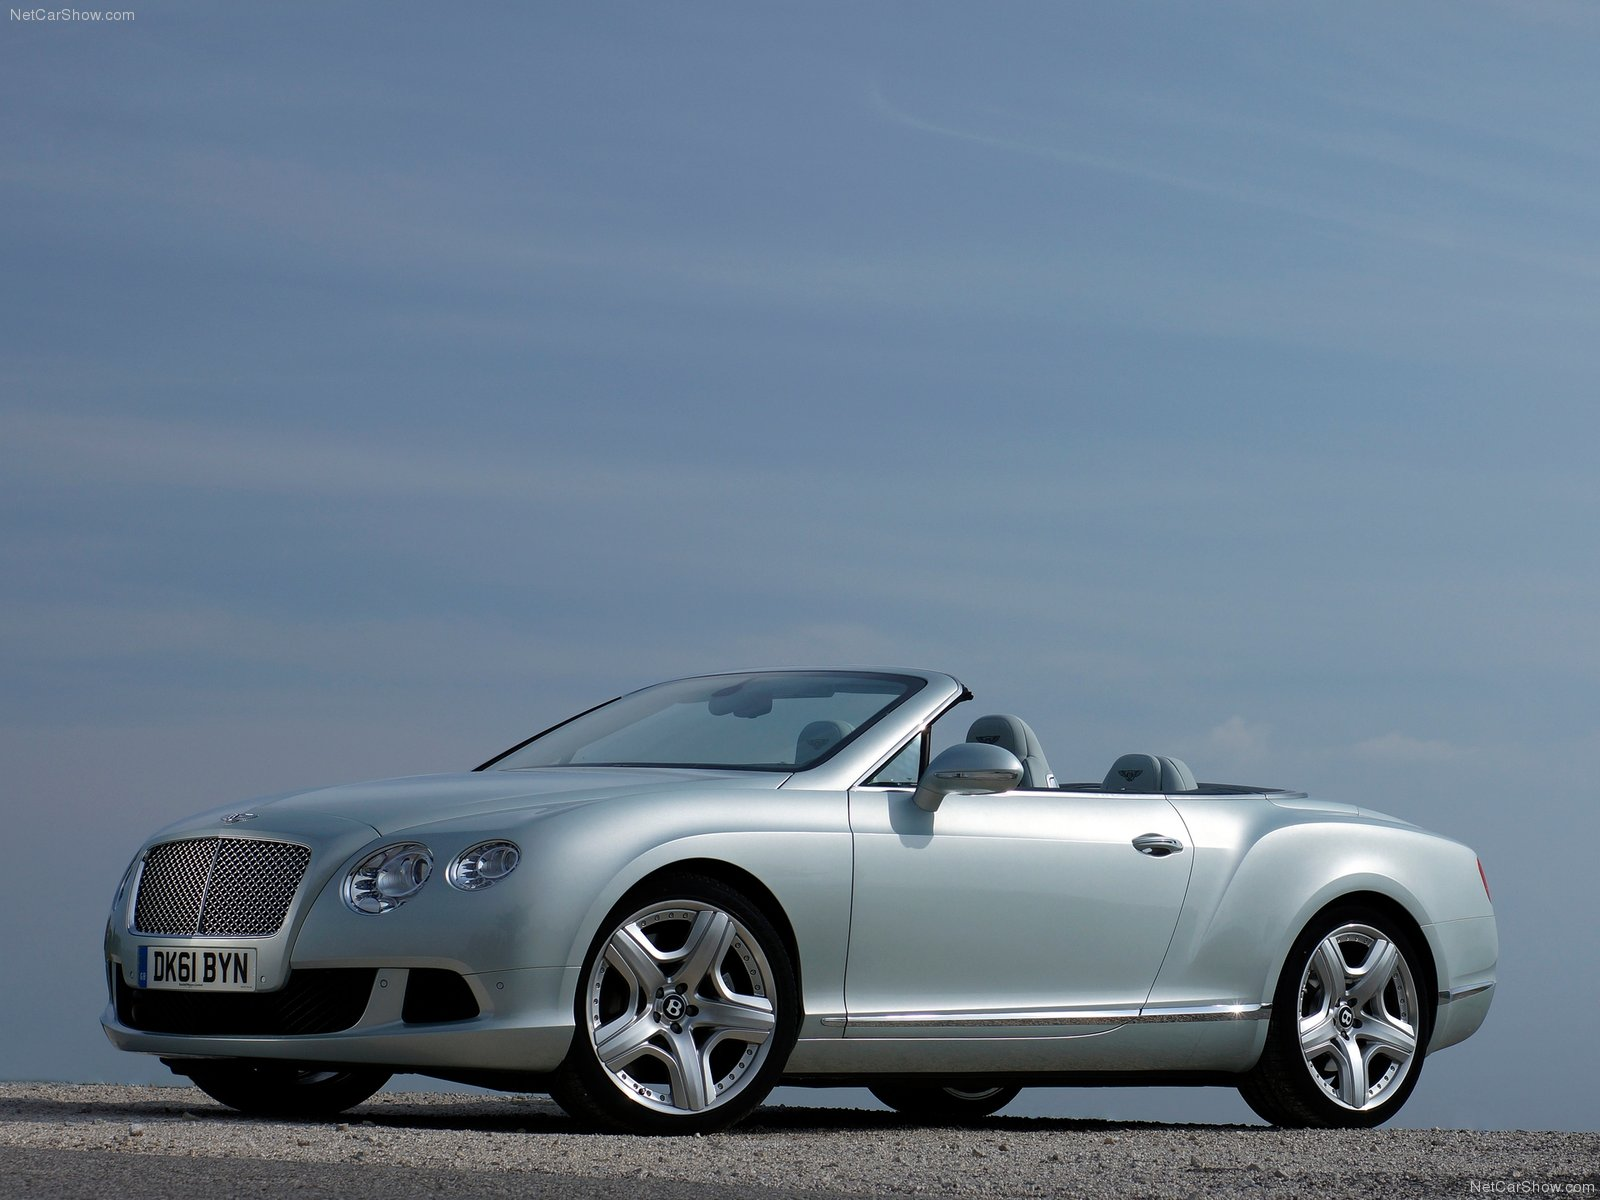 Bentley Continental Gtc Photos Photogallery With 83 Pics Carsbase Com